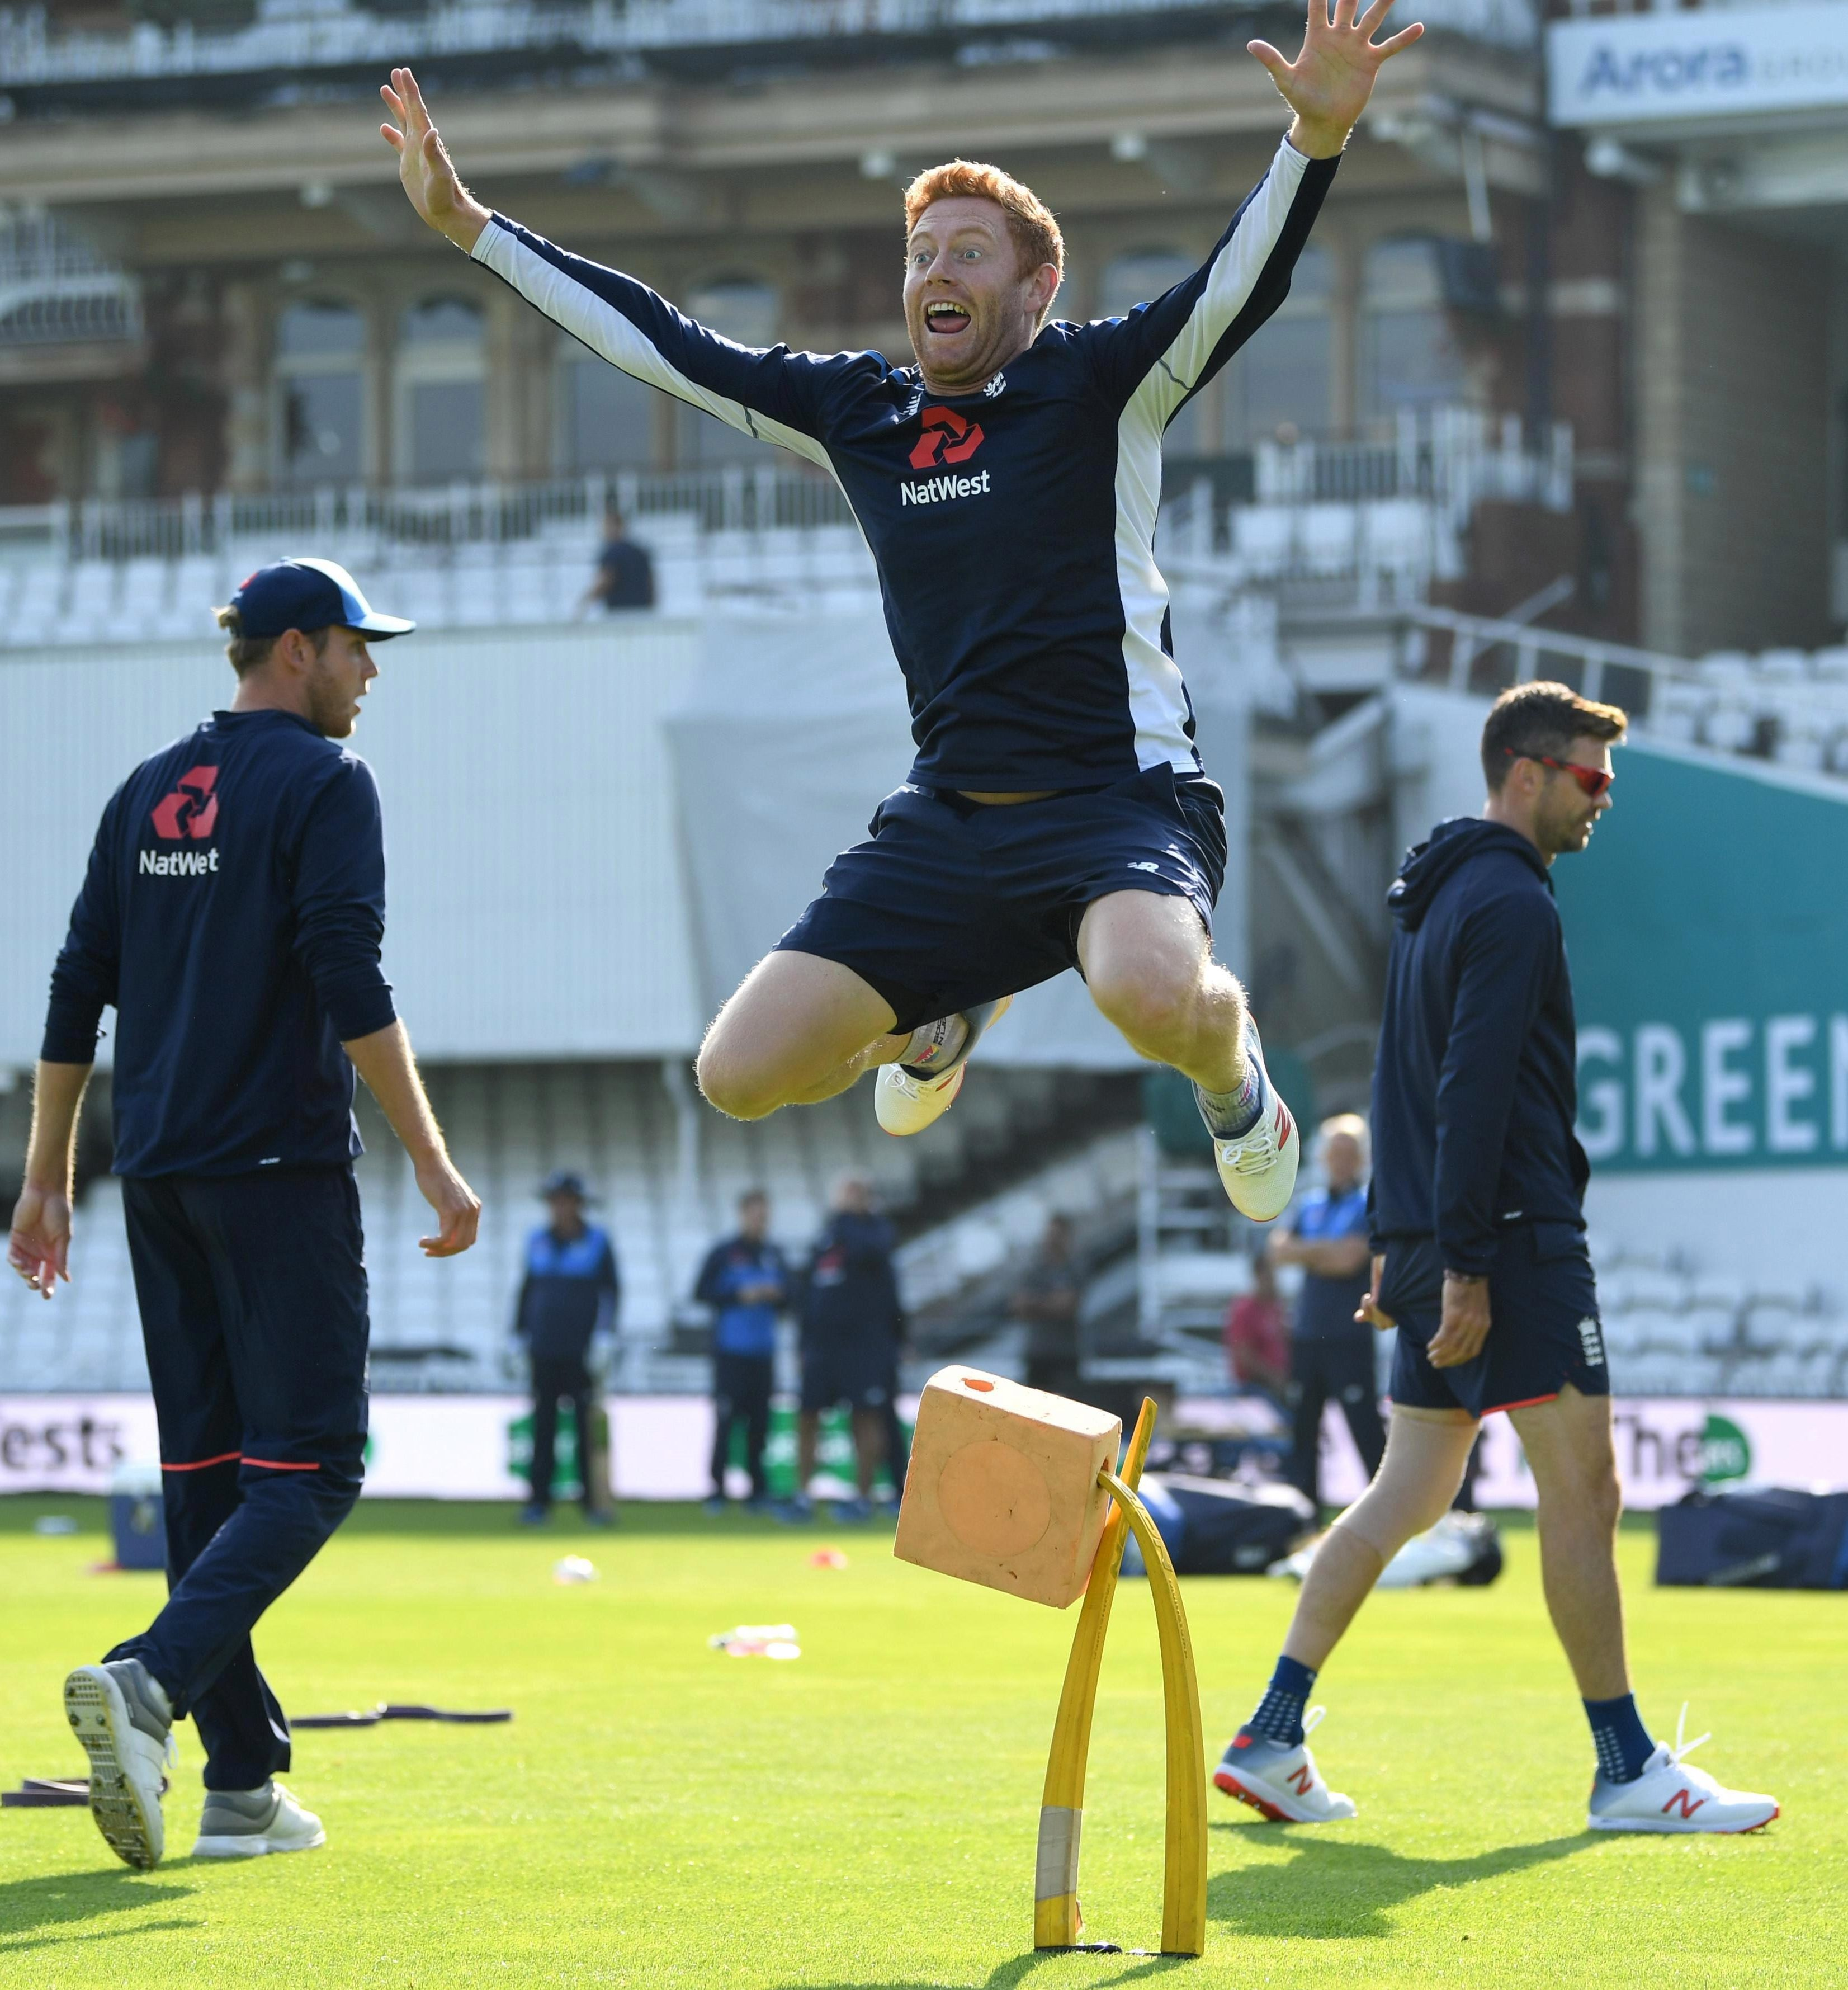 Jonny Bairstow will be a happy chappy today to learn he is getting the gloves